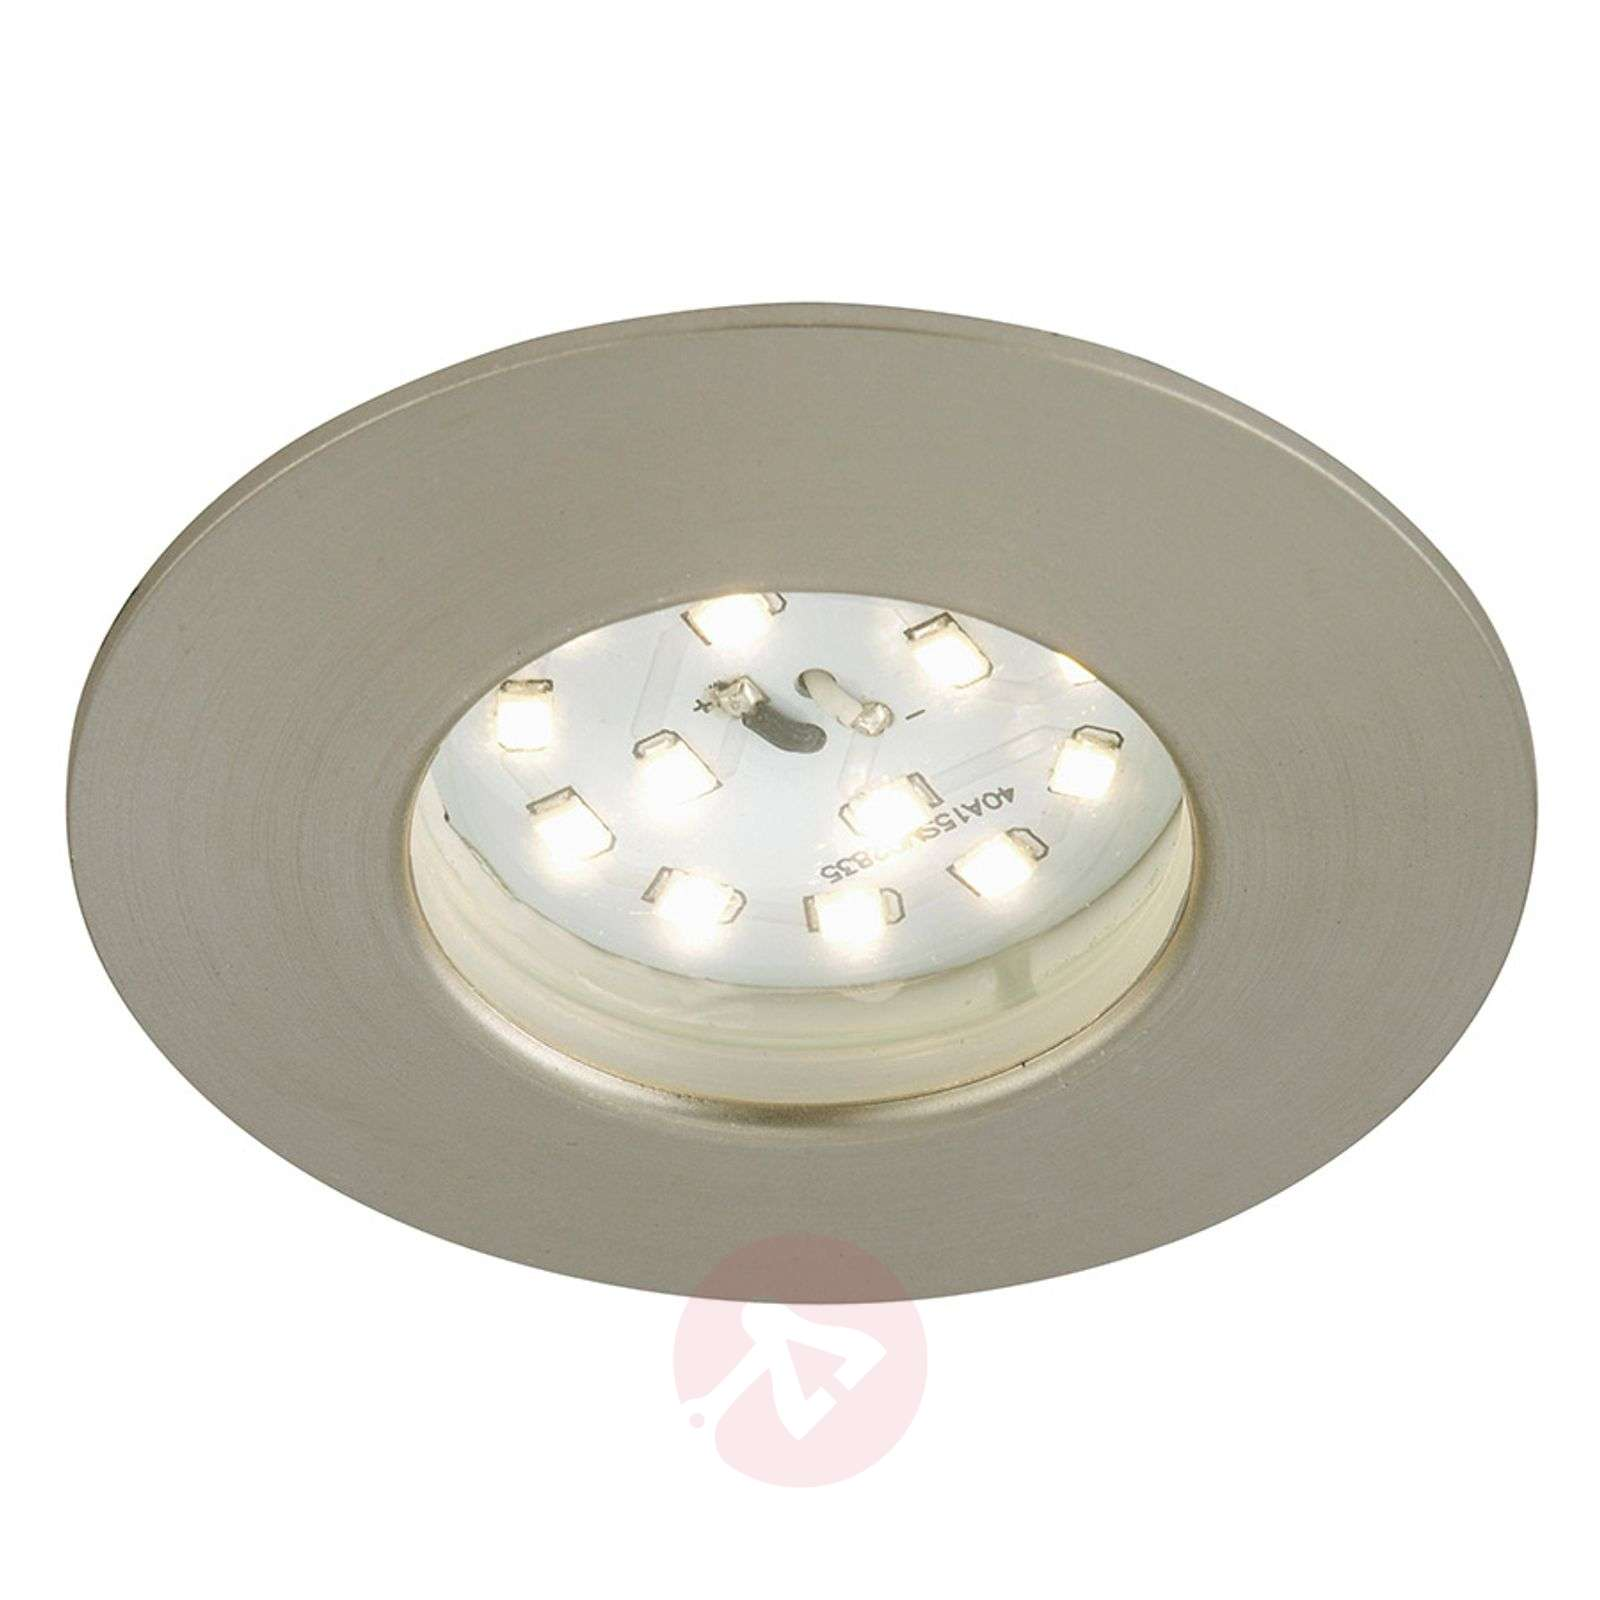 Spot encastré LED Till pour l'ext., nickel mat-1510333-01